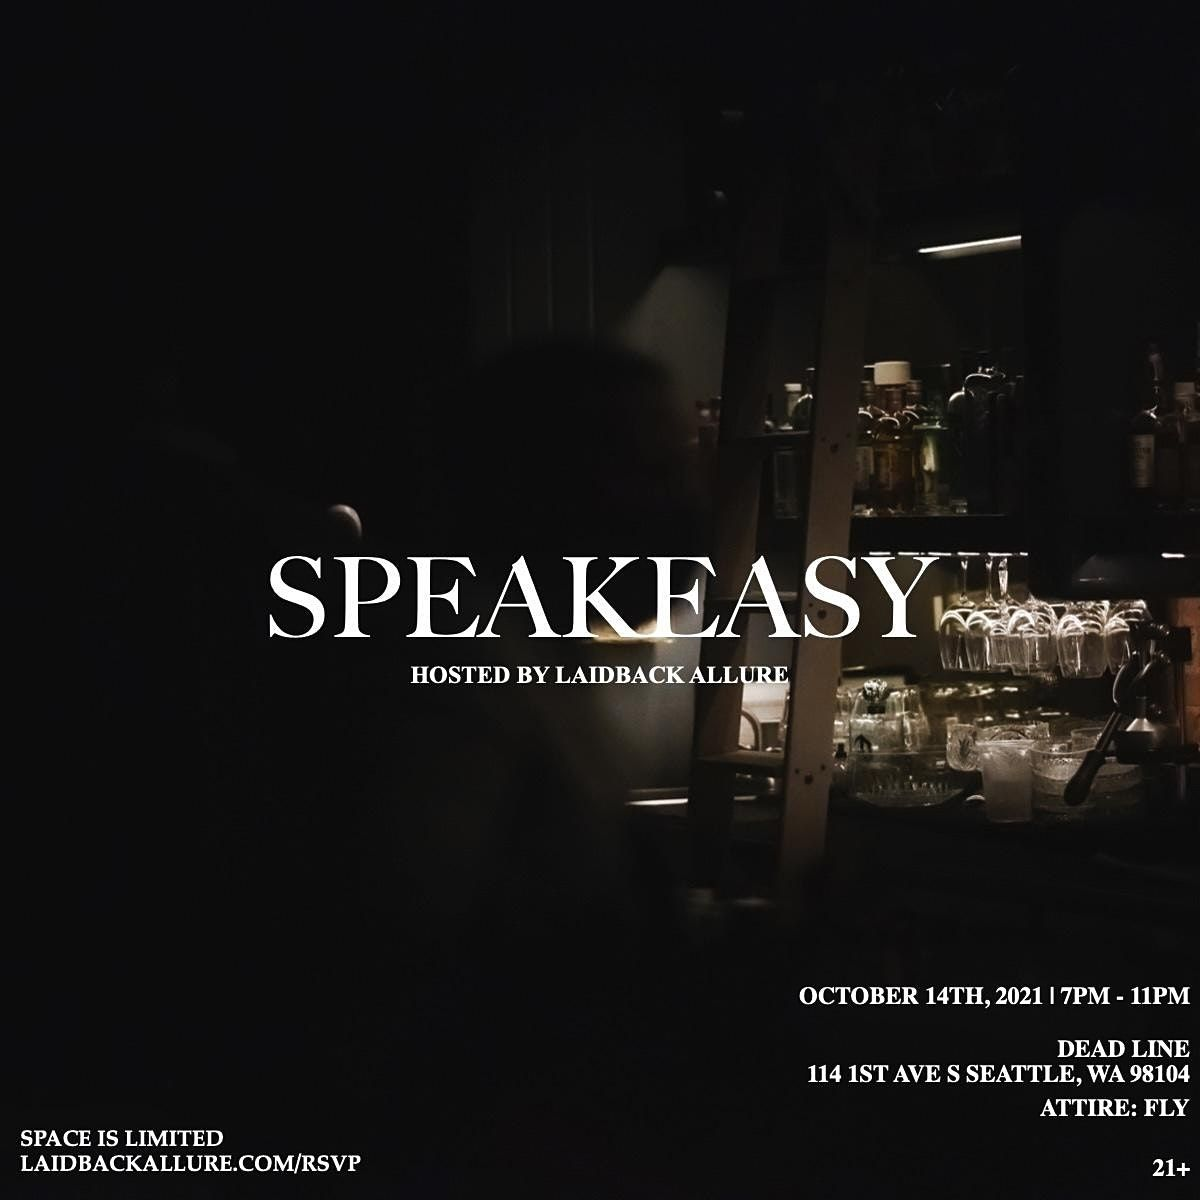 SPEAKEASY, Hosted by Laidback Allure